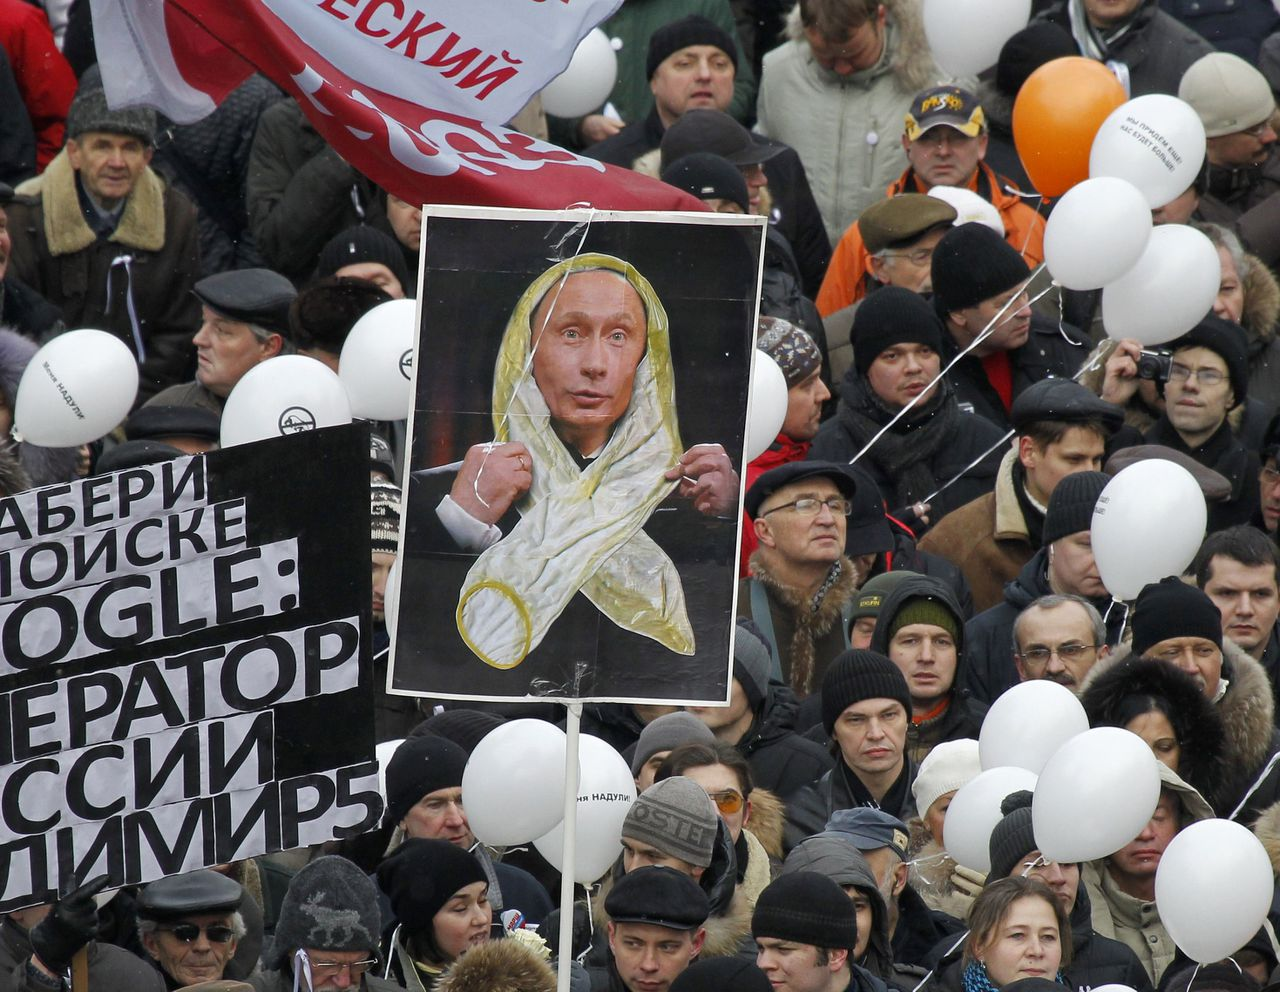 Protesters hold placards, balloons and flags during a demonstration against recent parliamentary election results in Moscow December 24, 2011. Tens of thousands of flag-waving and chanting protesters called on Saturday for a disputed parliamentary election to be rerun, increasing pressure on Vladimir Putin as he seeks a new term as Russian president. The central placard makes a reference to Putin's remarks that he mistook white ribbons worn by protesters for condoms. REUTERS/Denis Sinyakov (RUSSIA - Tags: POLITICS CIVIL UNREST)